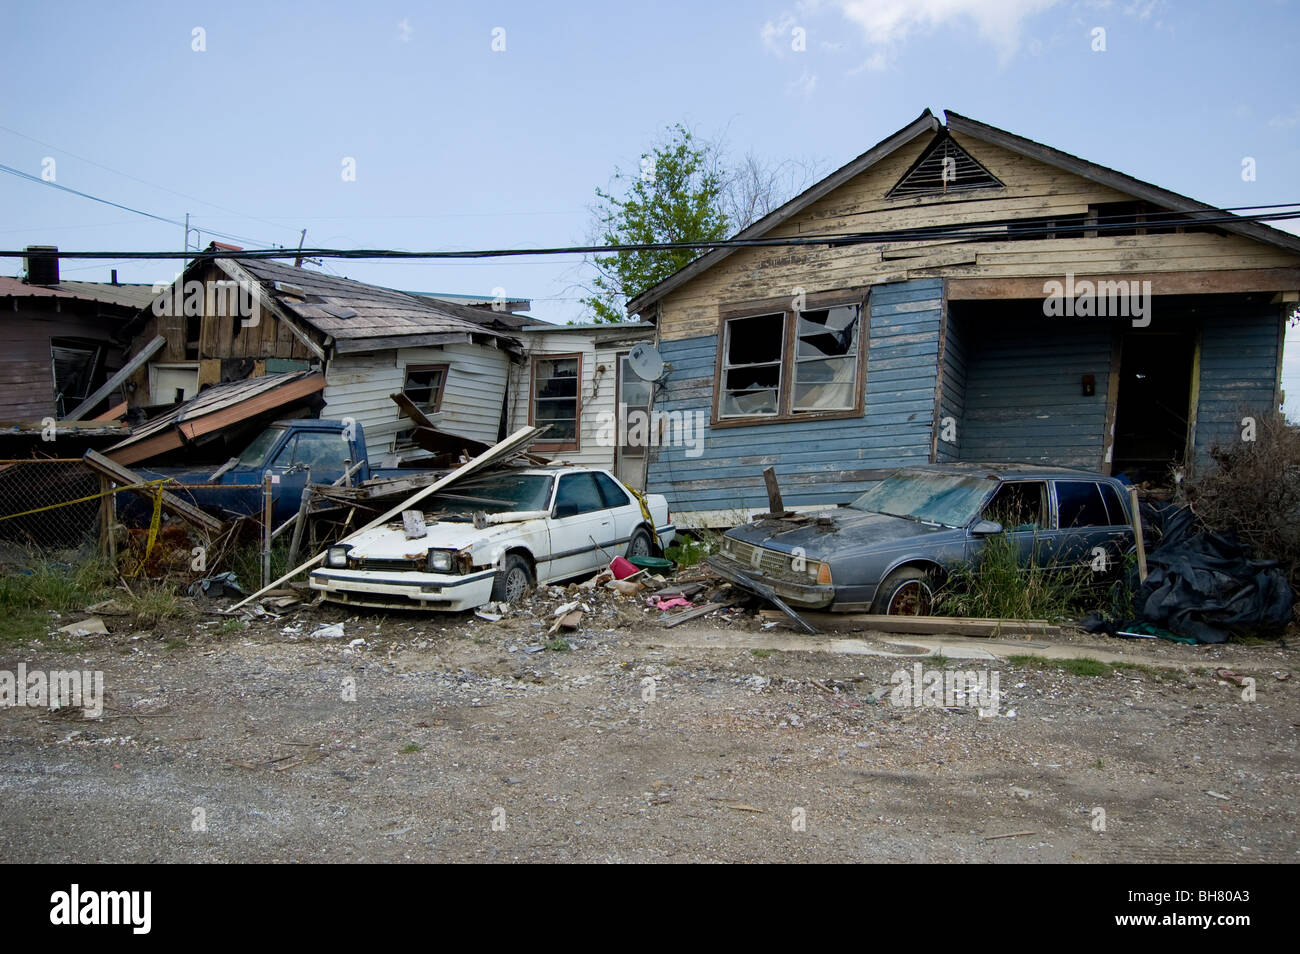 Cars And Homes Lie In Rubble 9 Months After Hurricane